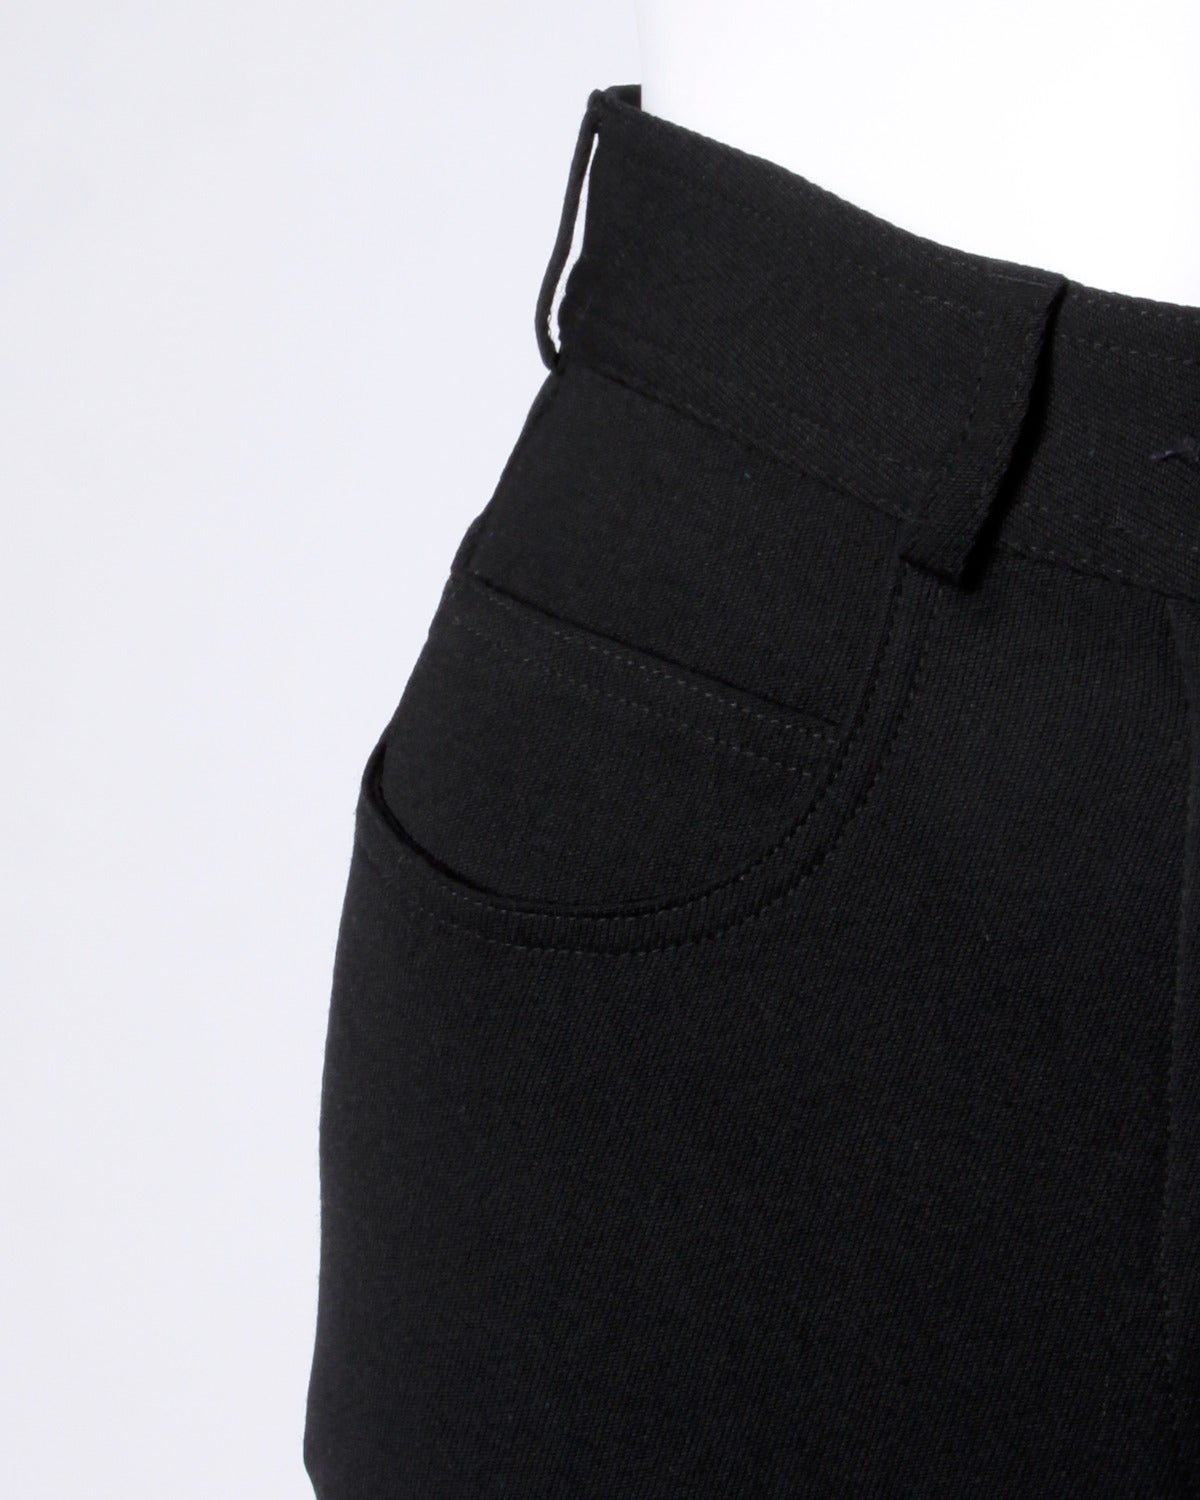 Moschino Vintage Black Wool High Waisted Pants with Heart Button For Sale 2